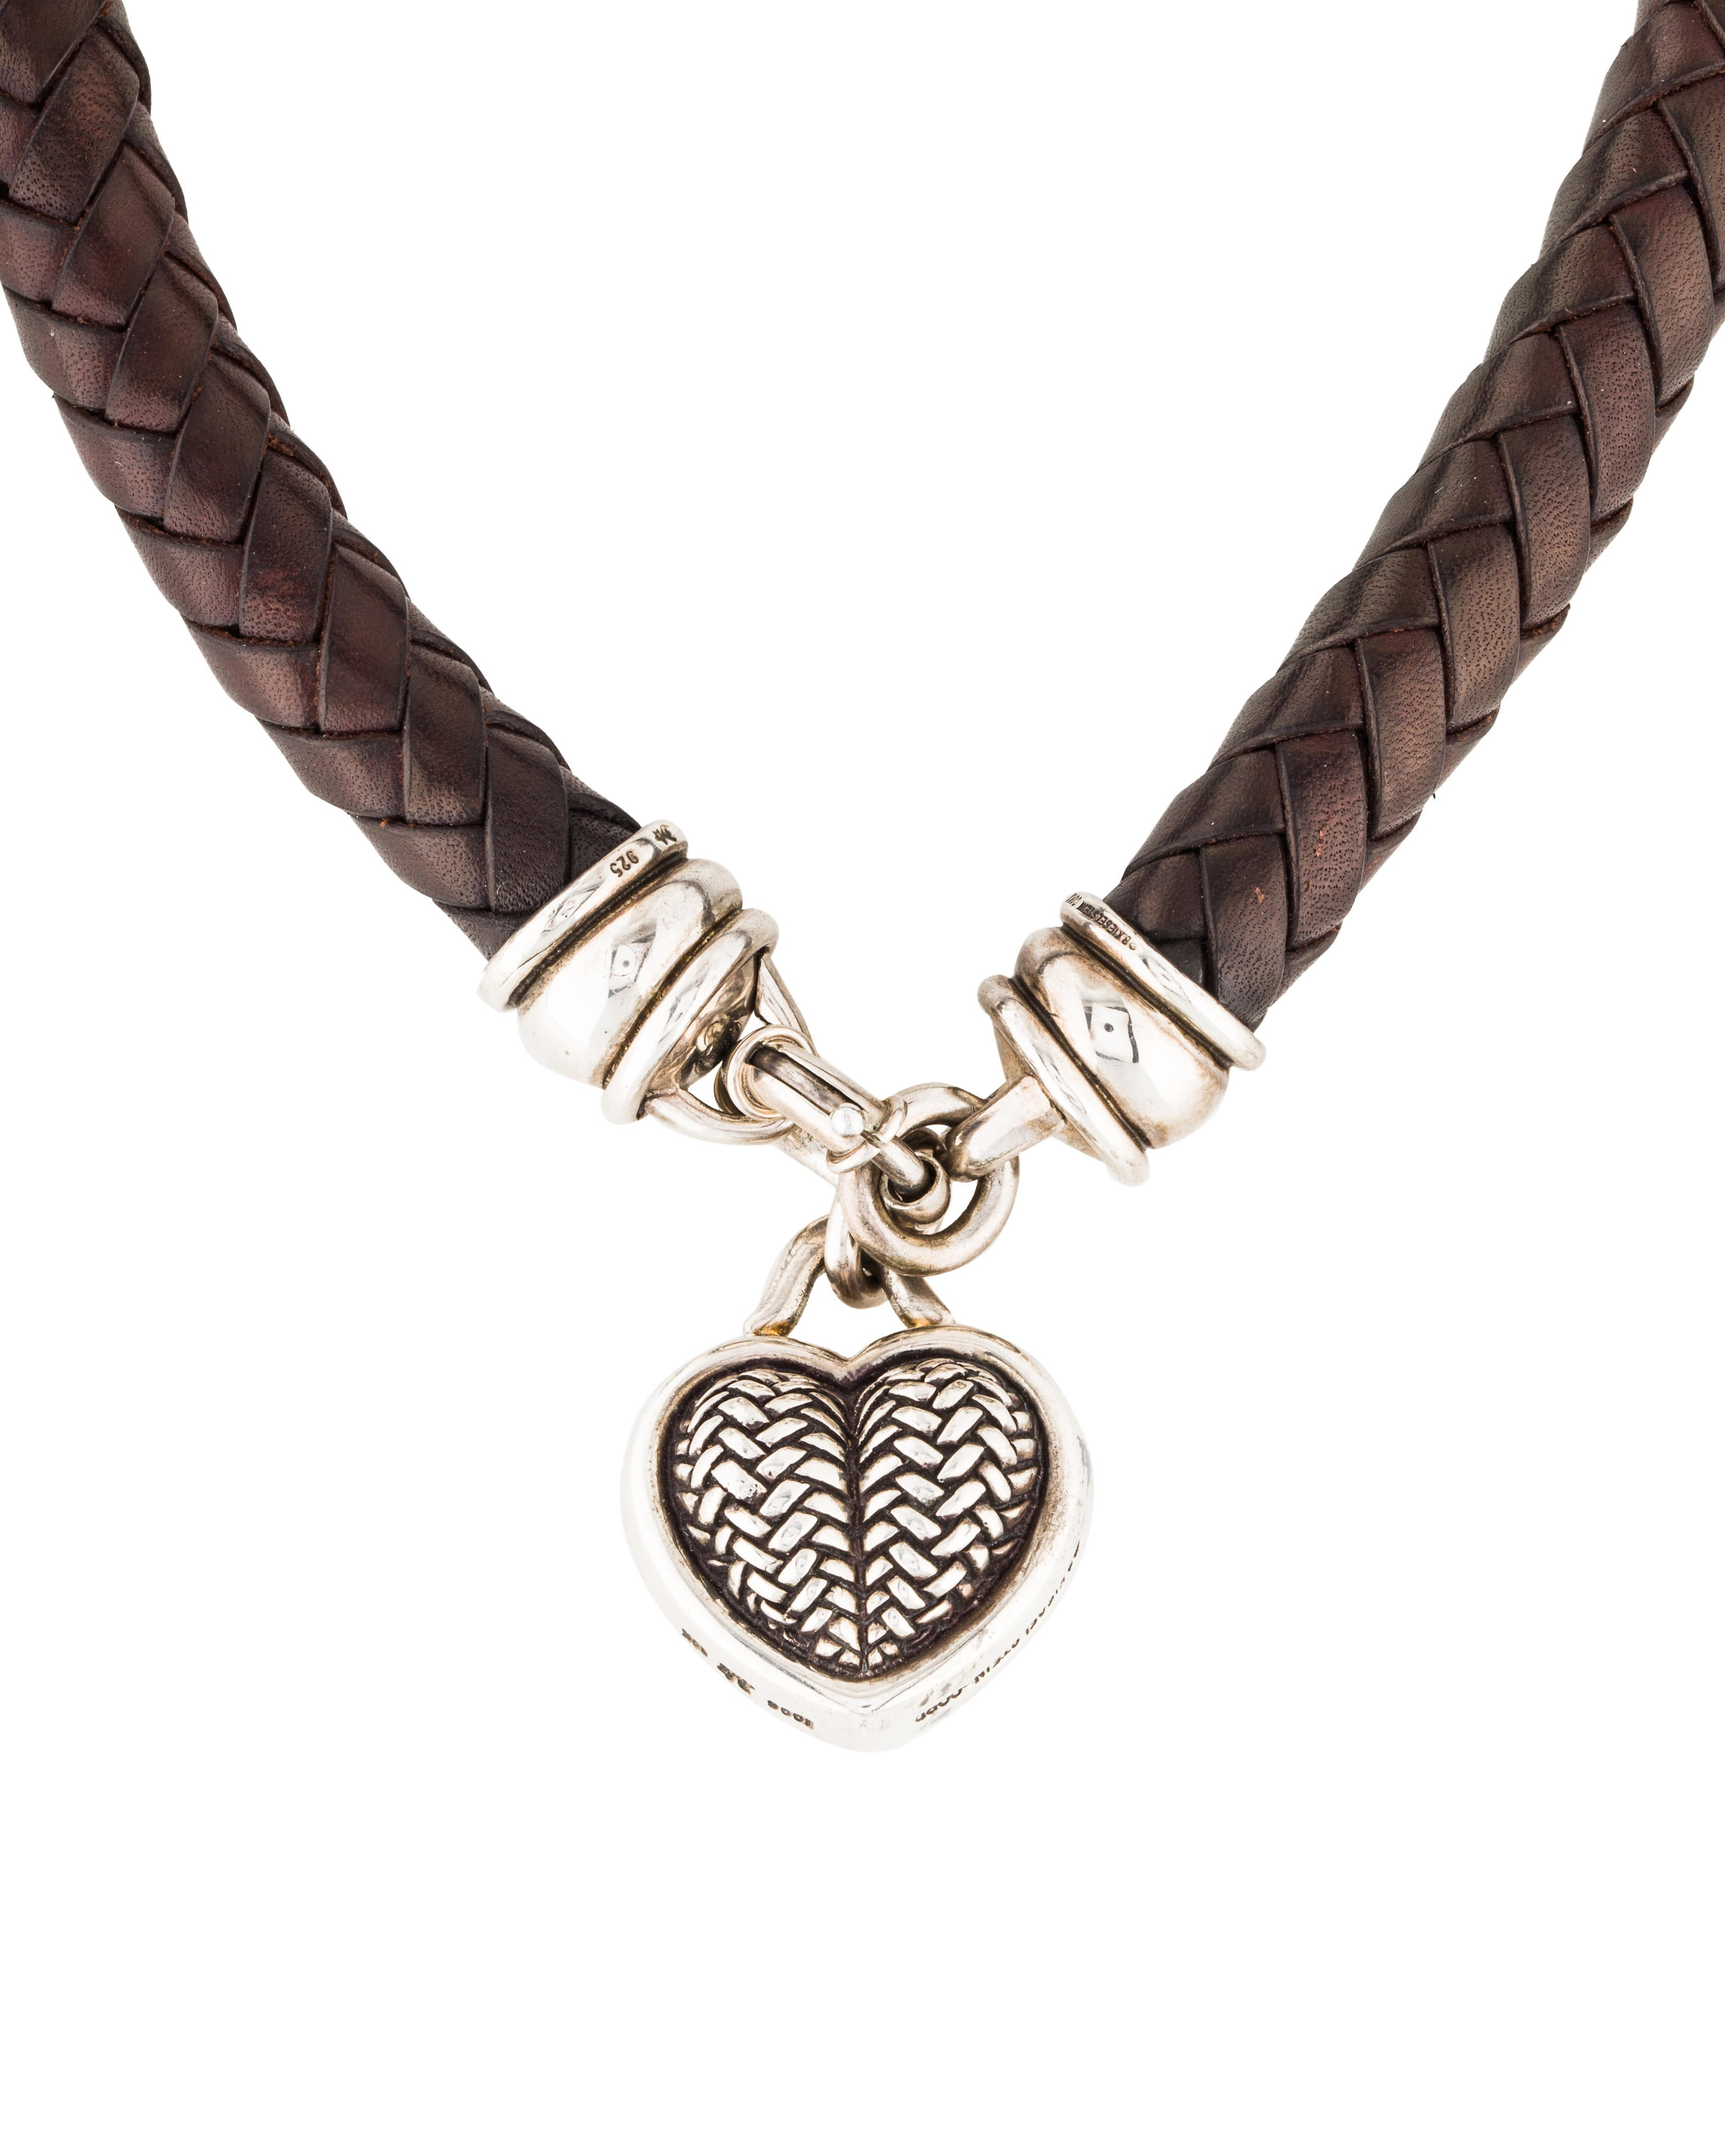 Barry kieselstein cord basketweave heart pendant necklace for Barry kieselstein cord jewelry